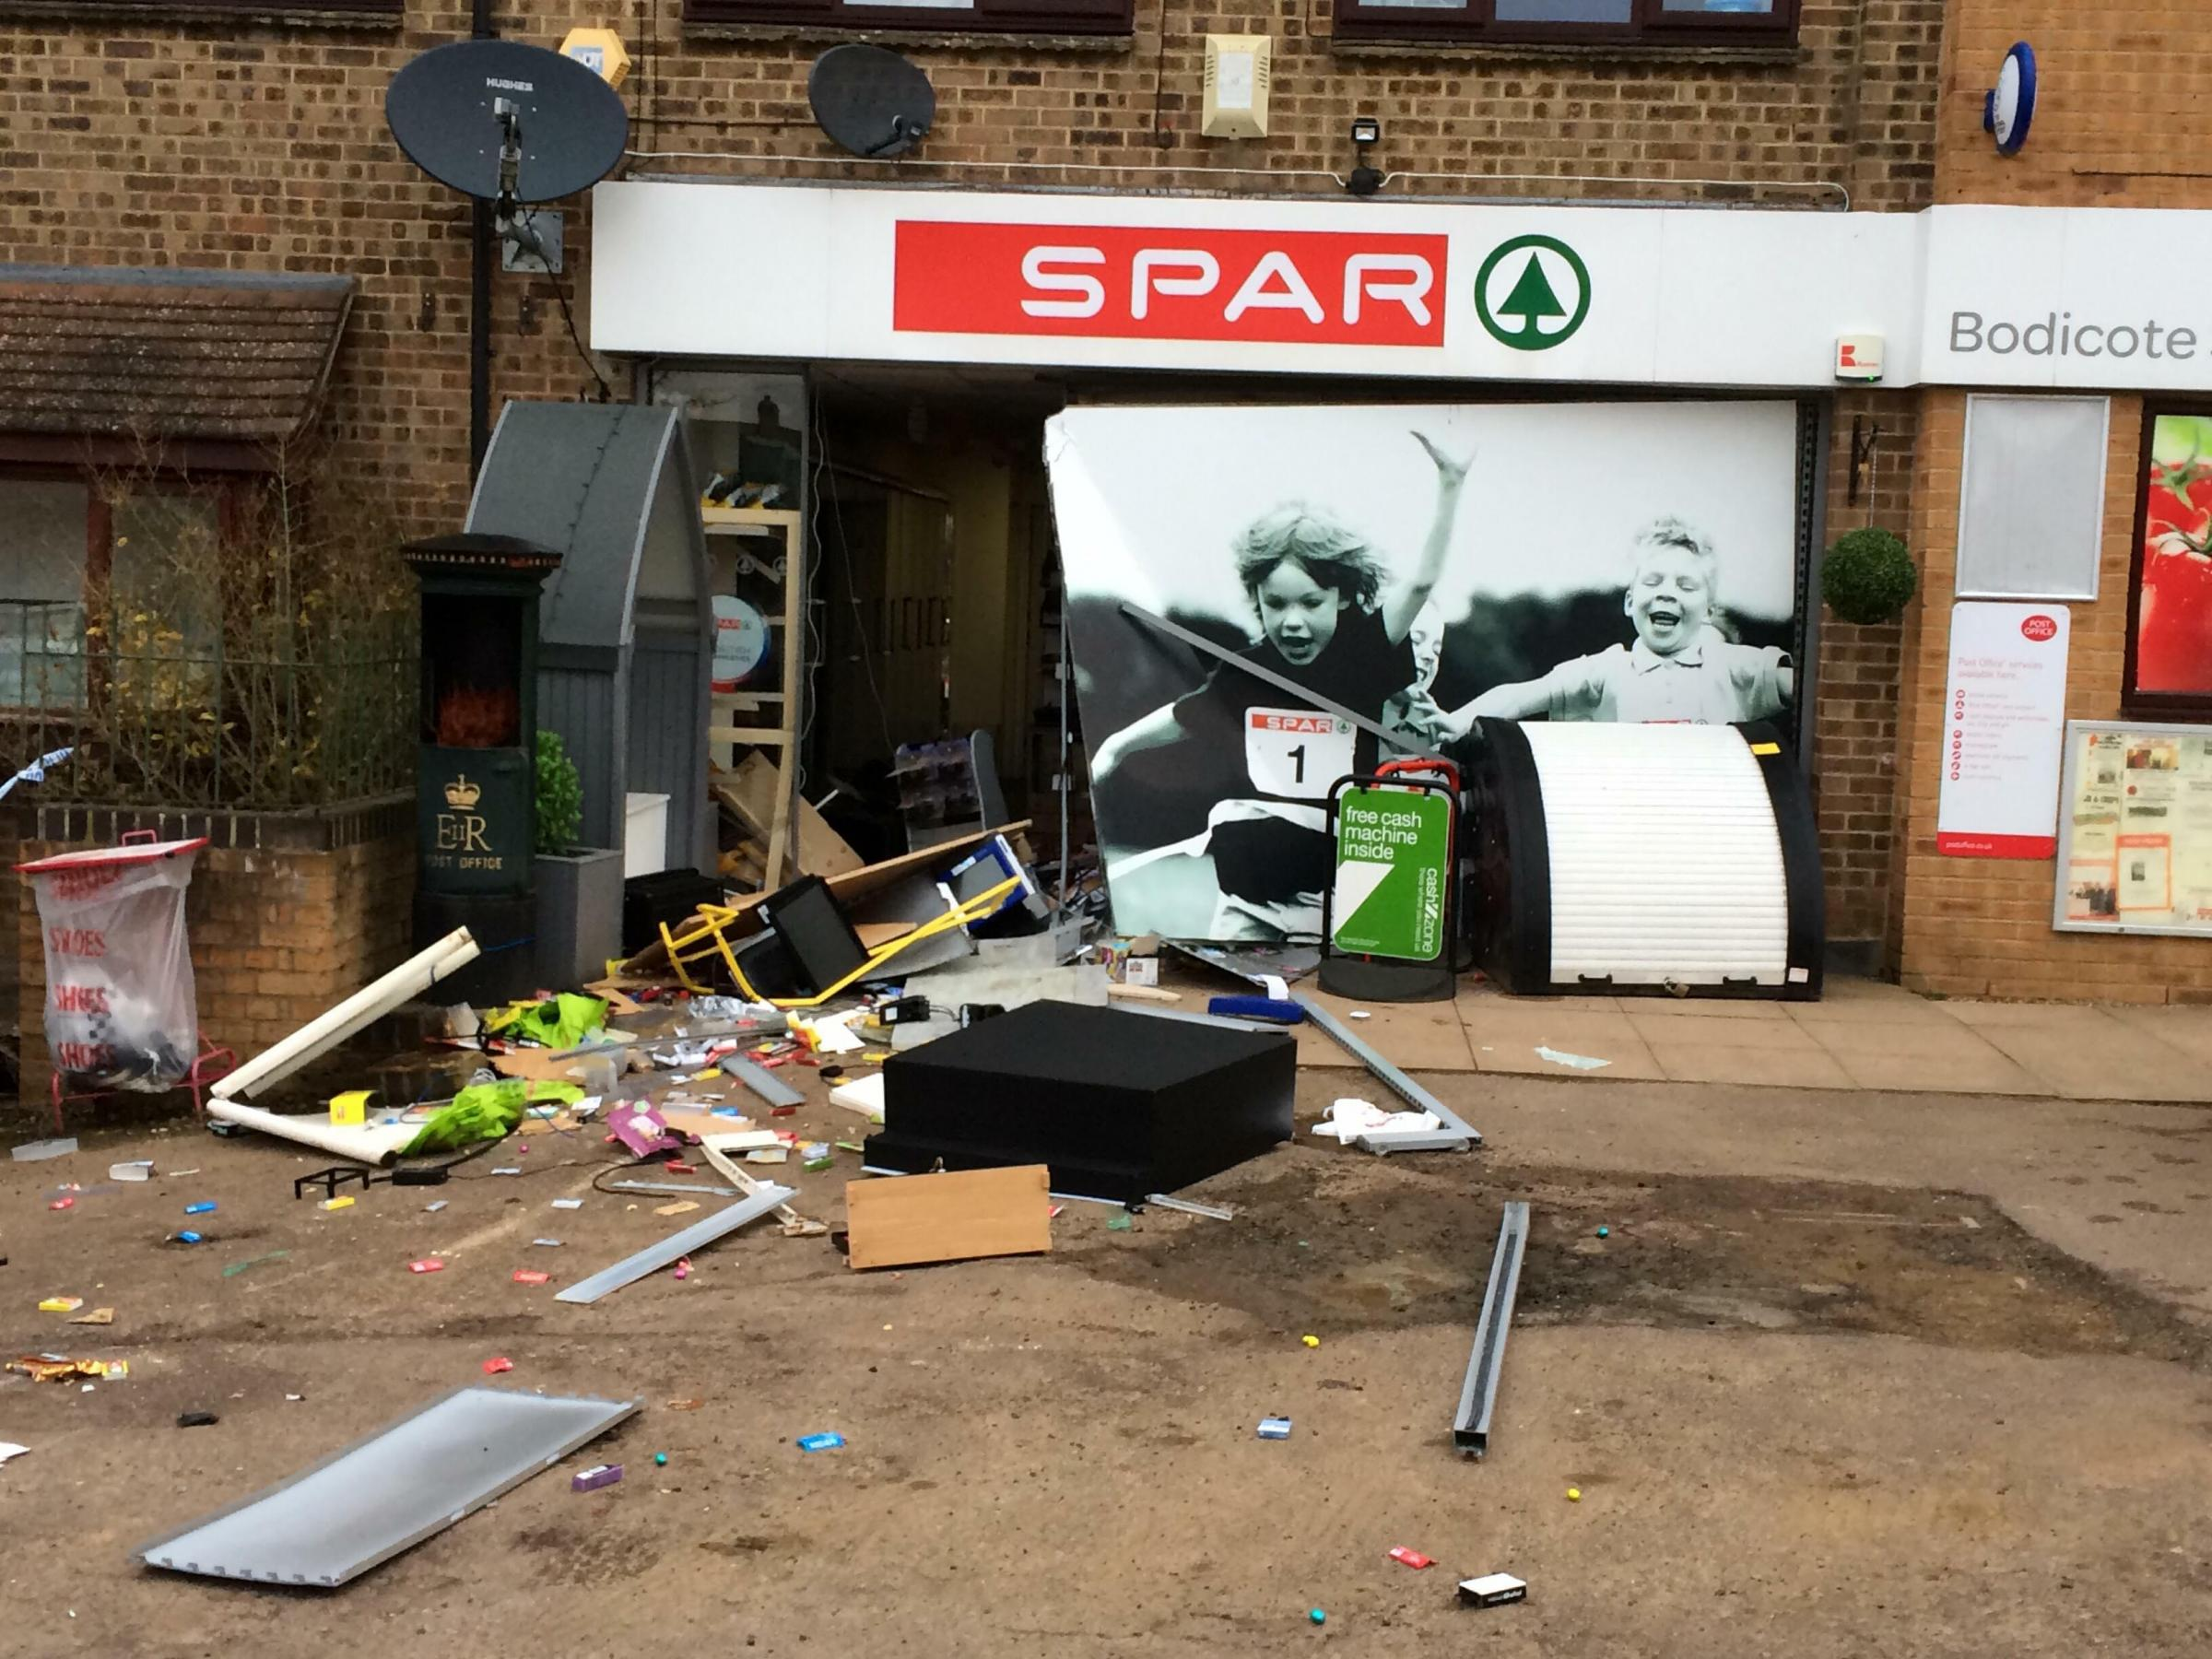 Spar in Bodicote following the ram raid